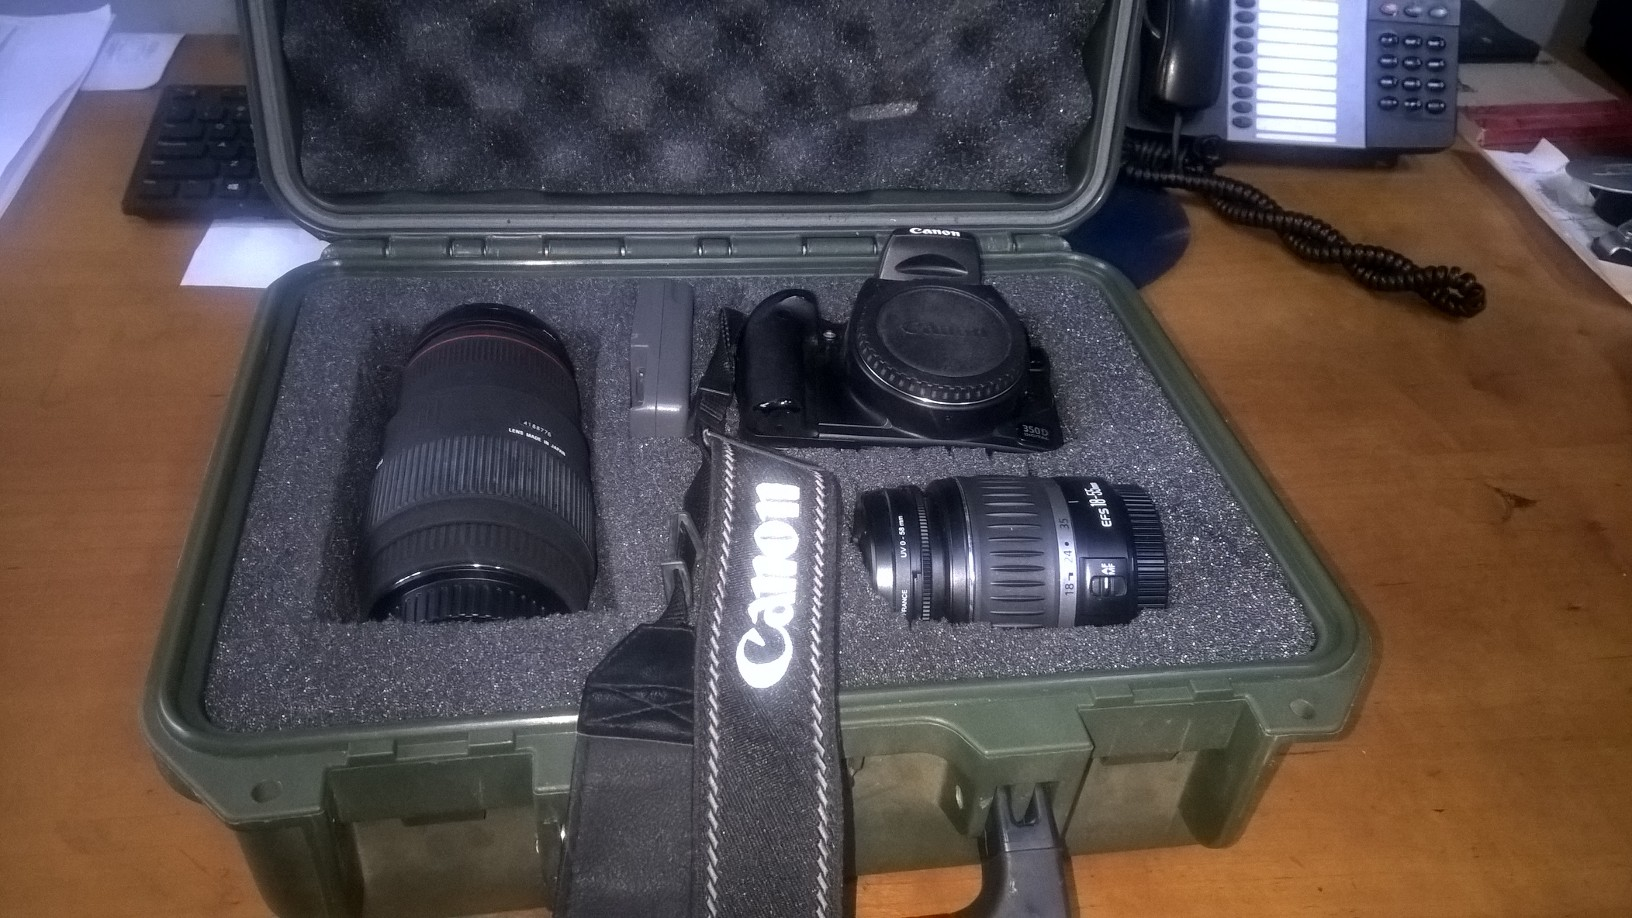 Canon 350 D with 2 lenses , charger and water proof carry case .